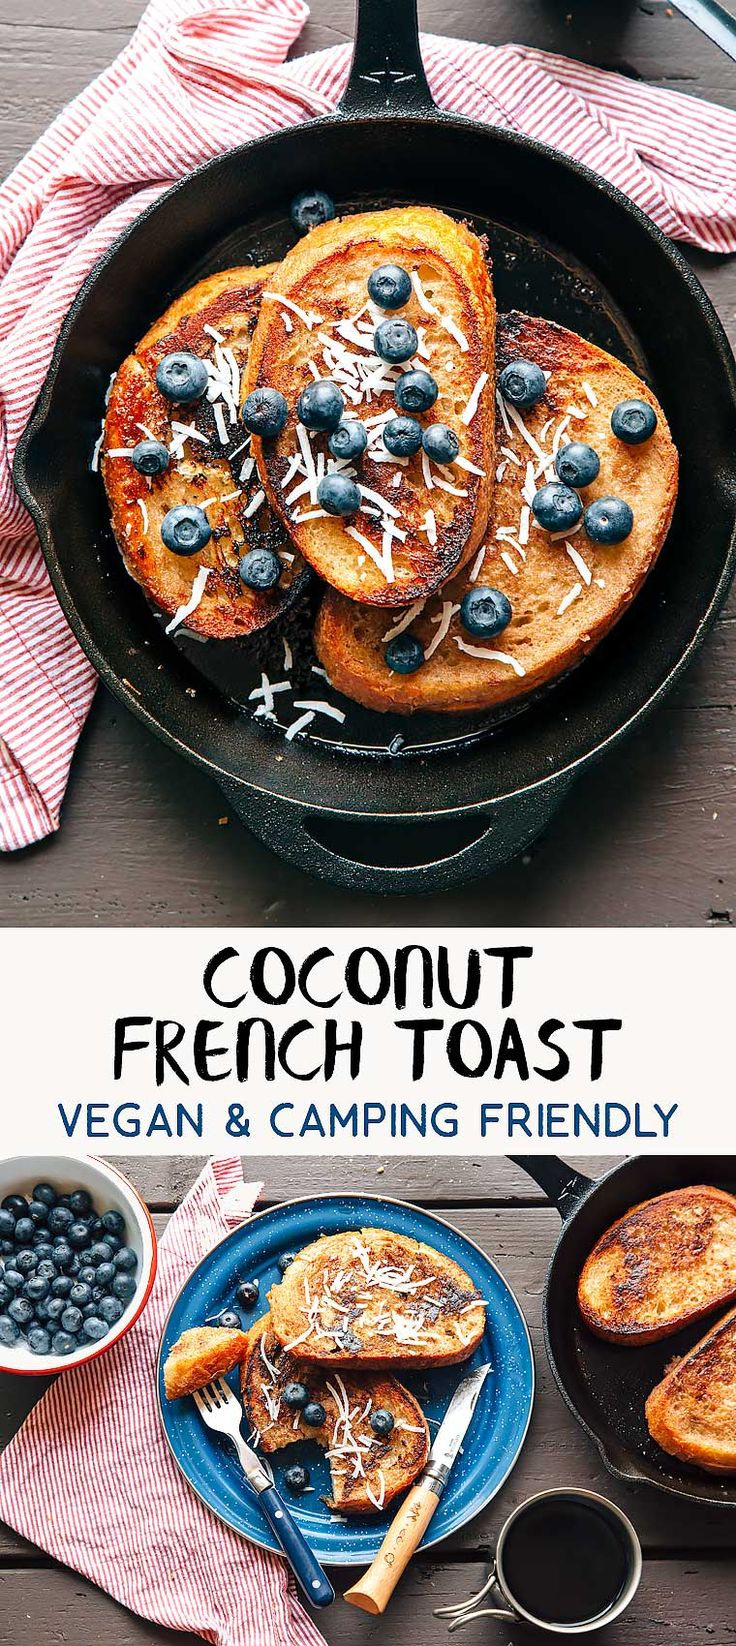 Here's an easy vegan camping breakfast idea: Banana and Coconut French Toast. Camping food that everyone can enjoy!